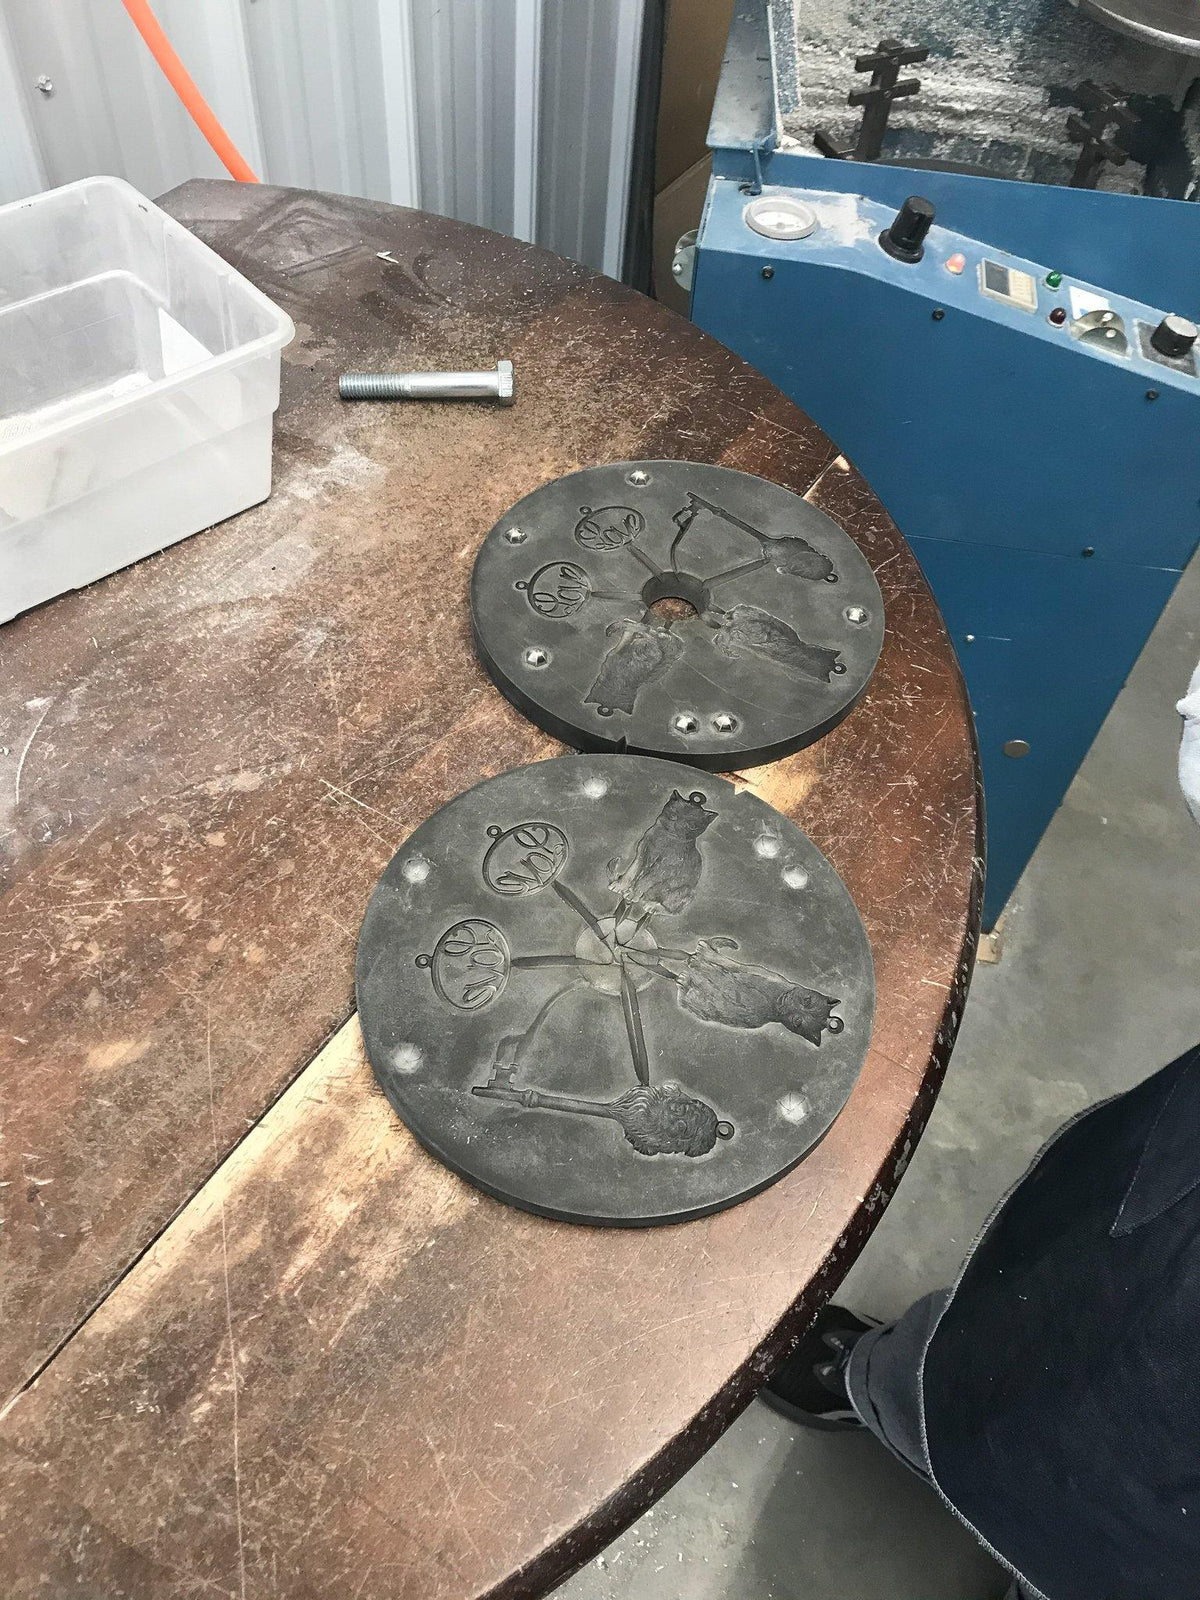 american company using traditional pewter molds